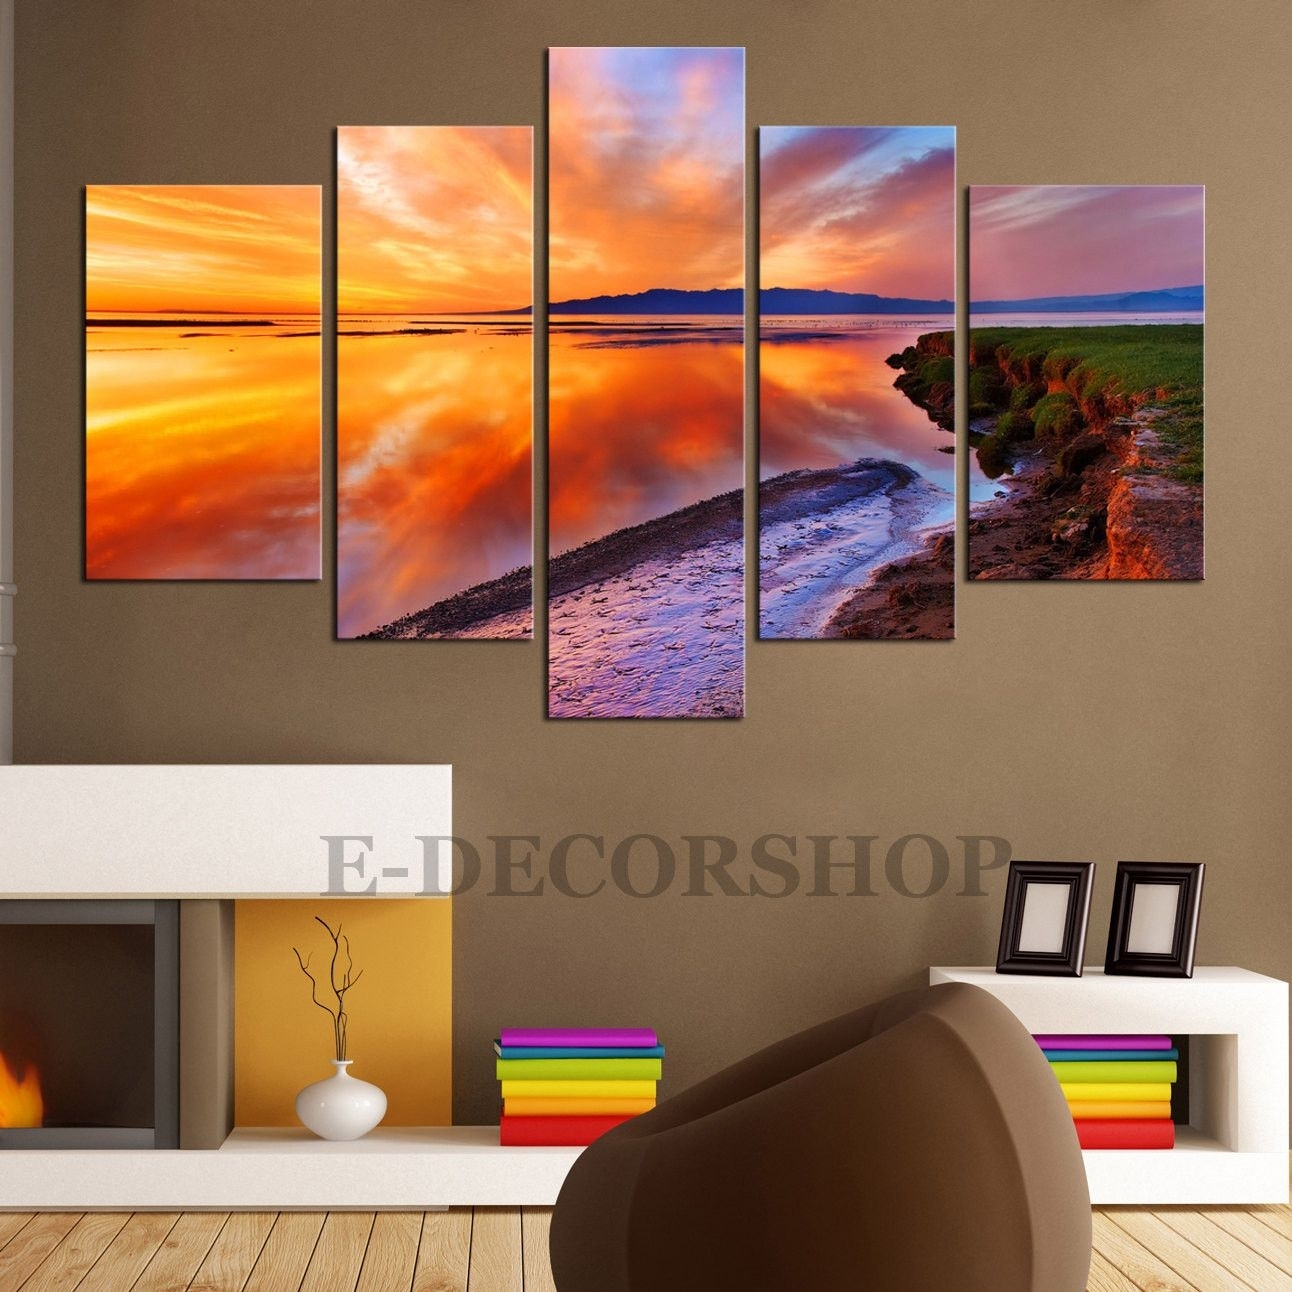 Large Canvas Wall Art – Sunset 5 Piece Canvas Art Print For Home With 2017 Large Canvas Wall Art (View 14 of 15)